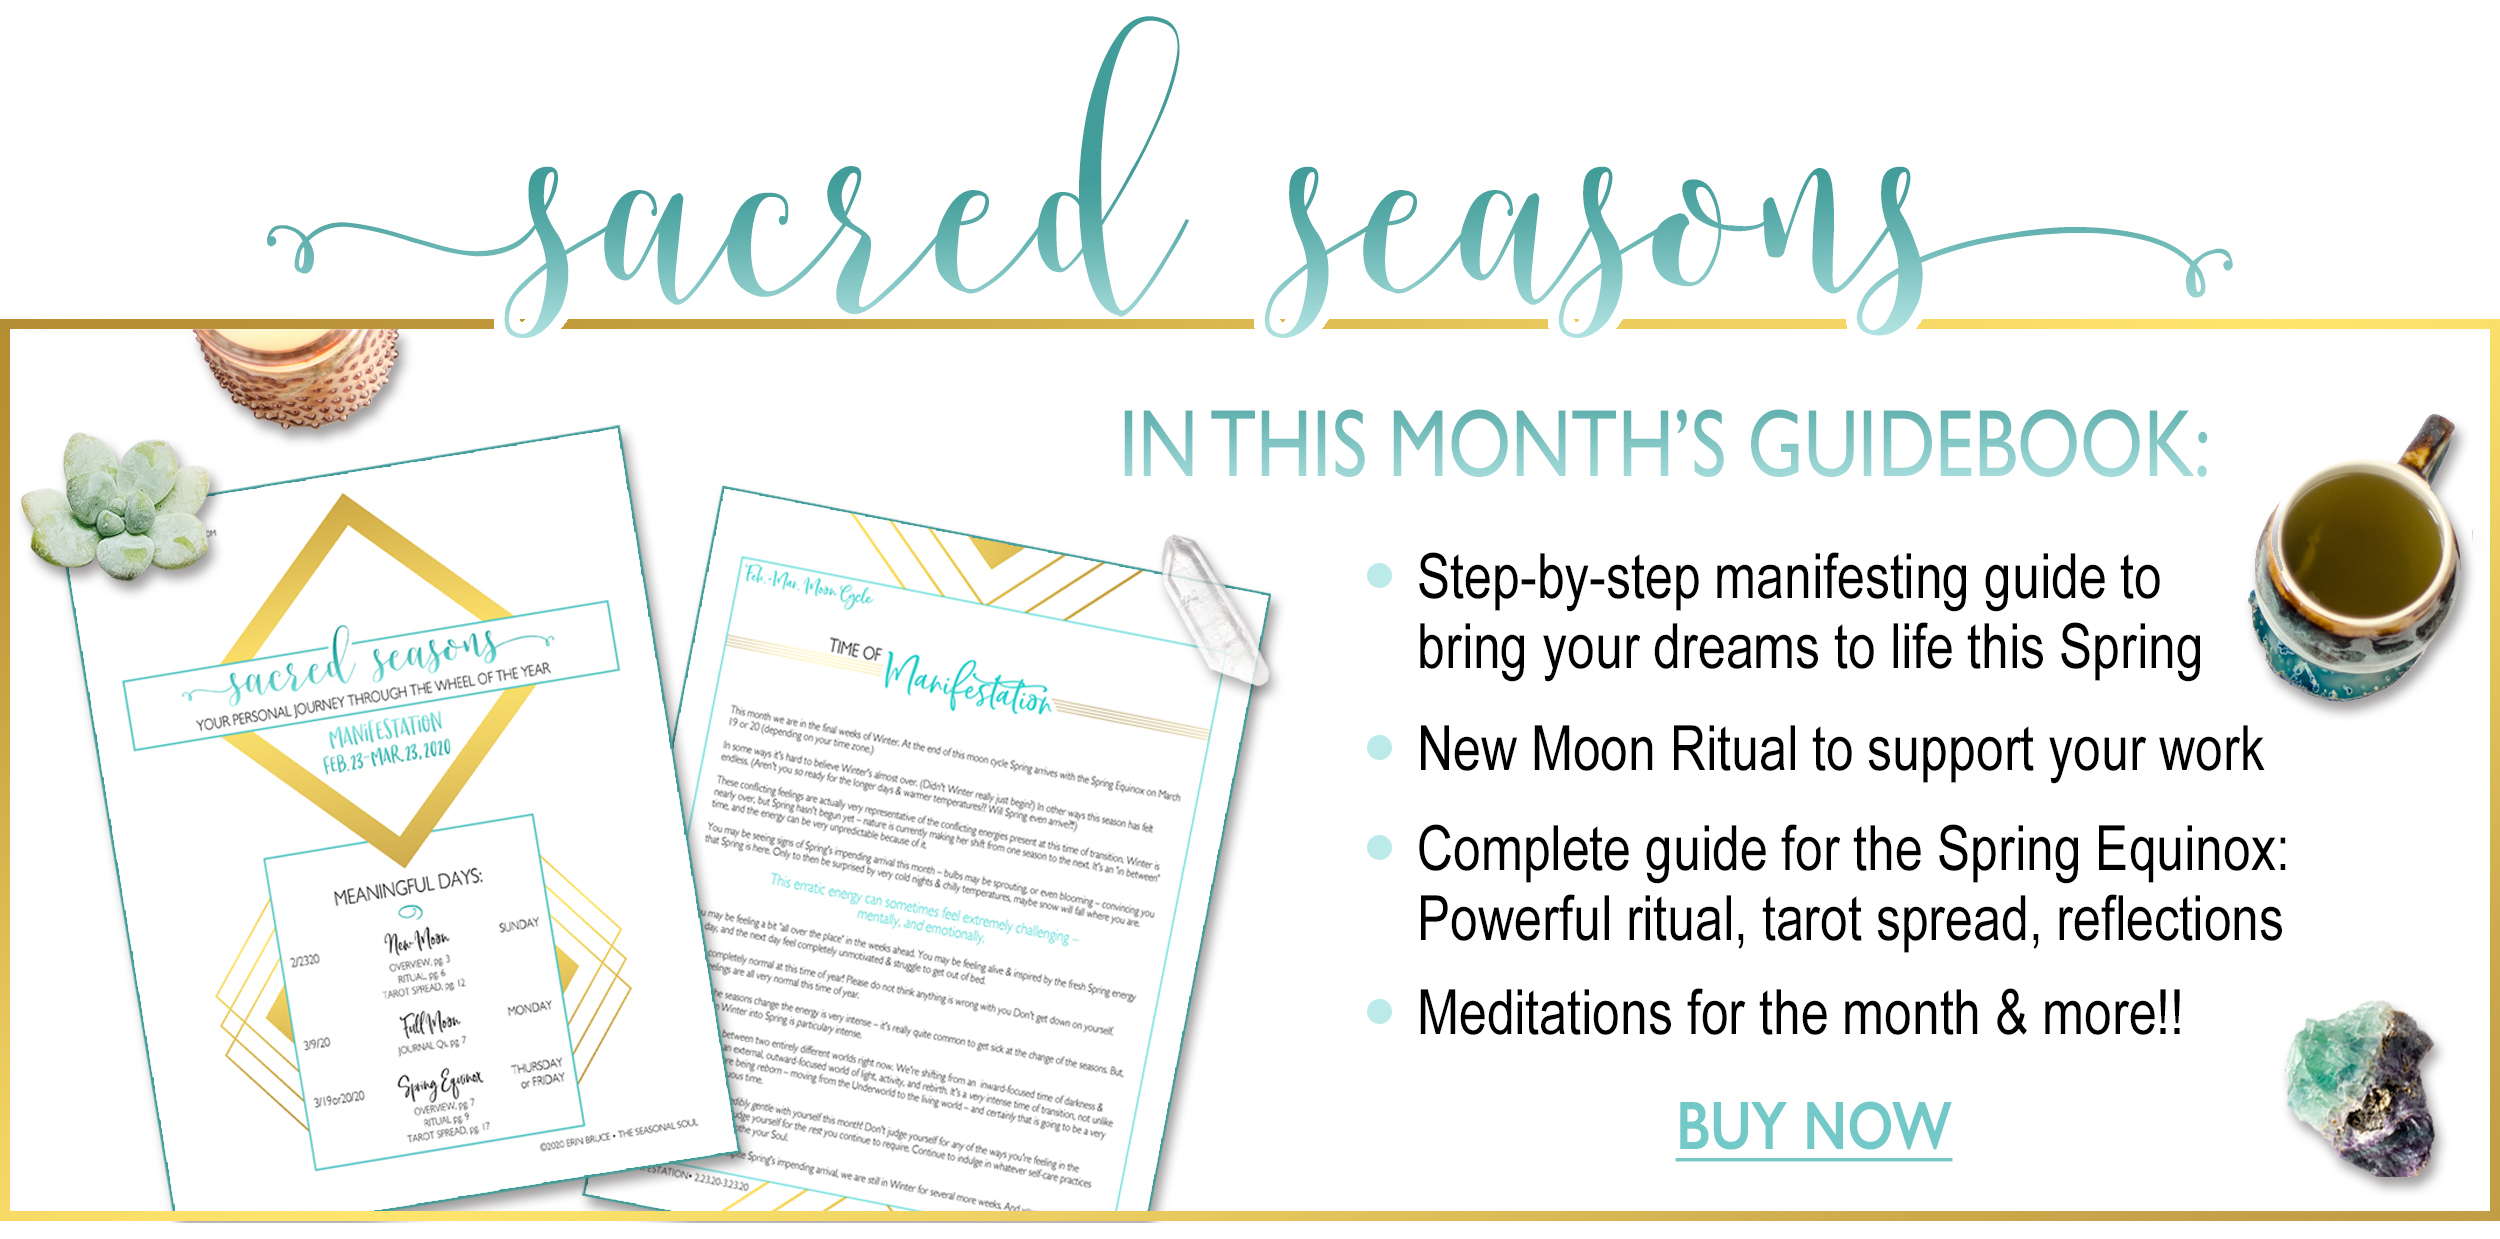 Sacred Seasons March Guidebook